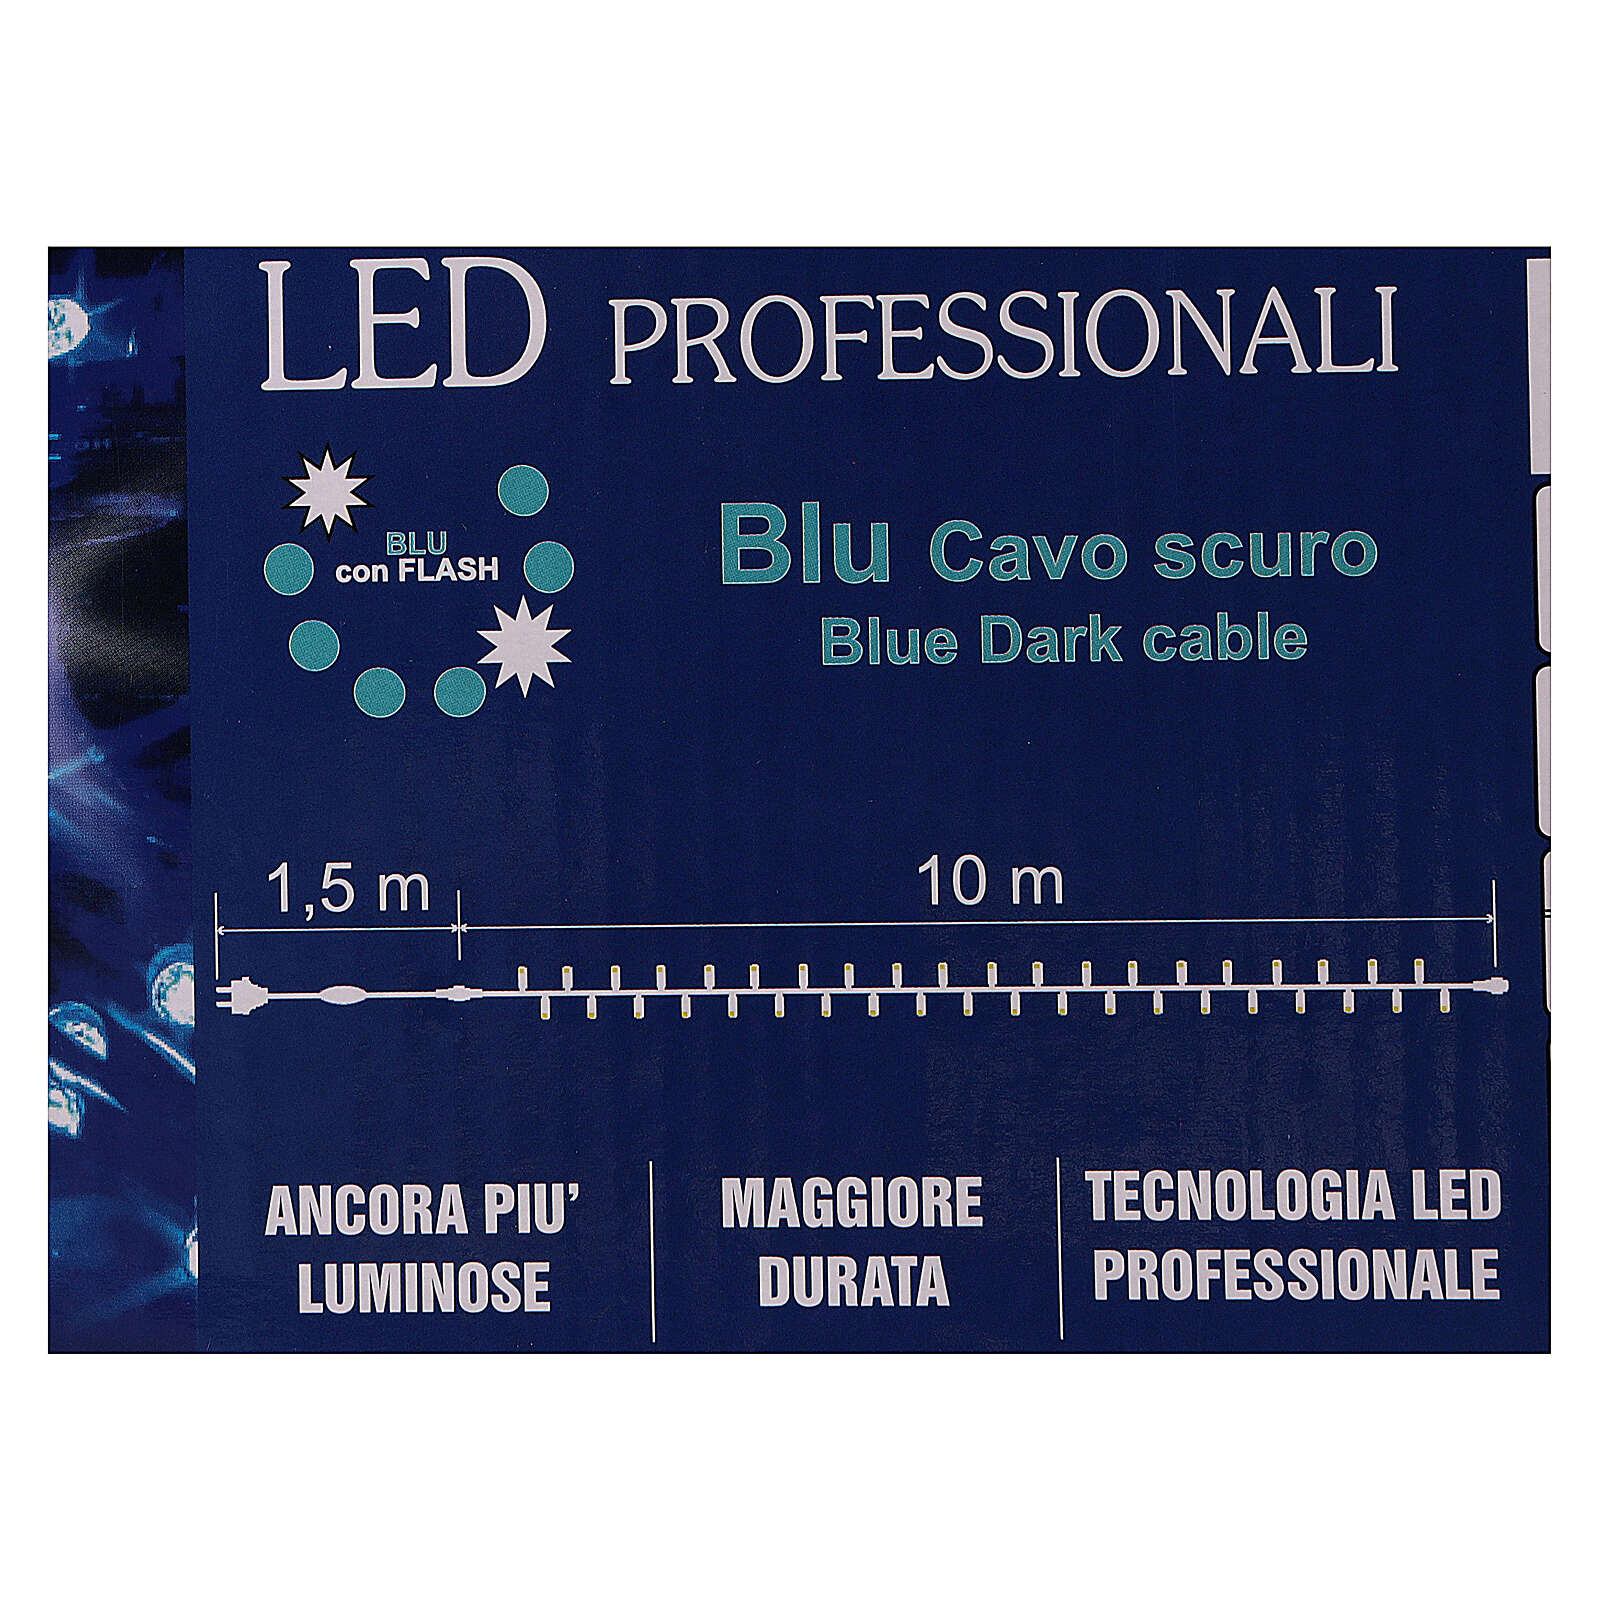 Christmas lights, 1.5 m, 100 blue LED lights, indoor and outdoor use 3